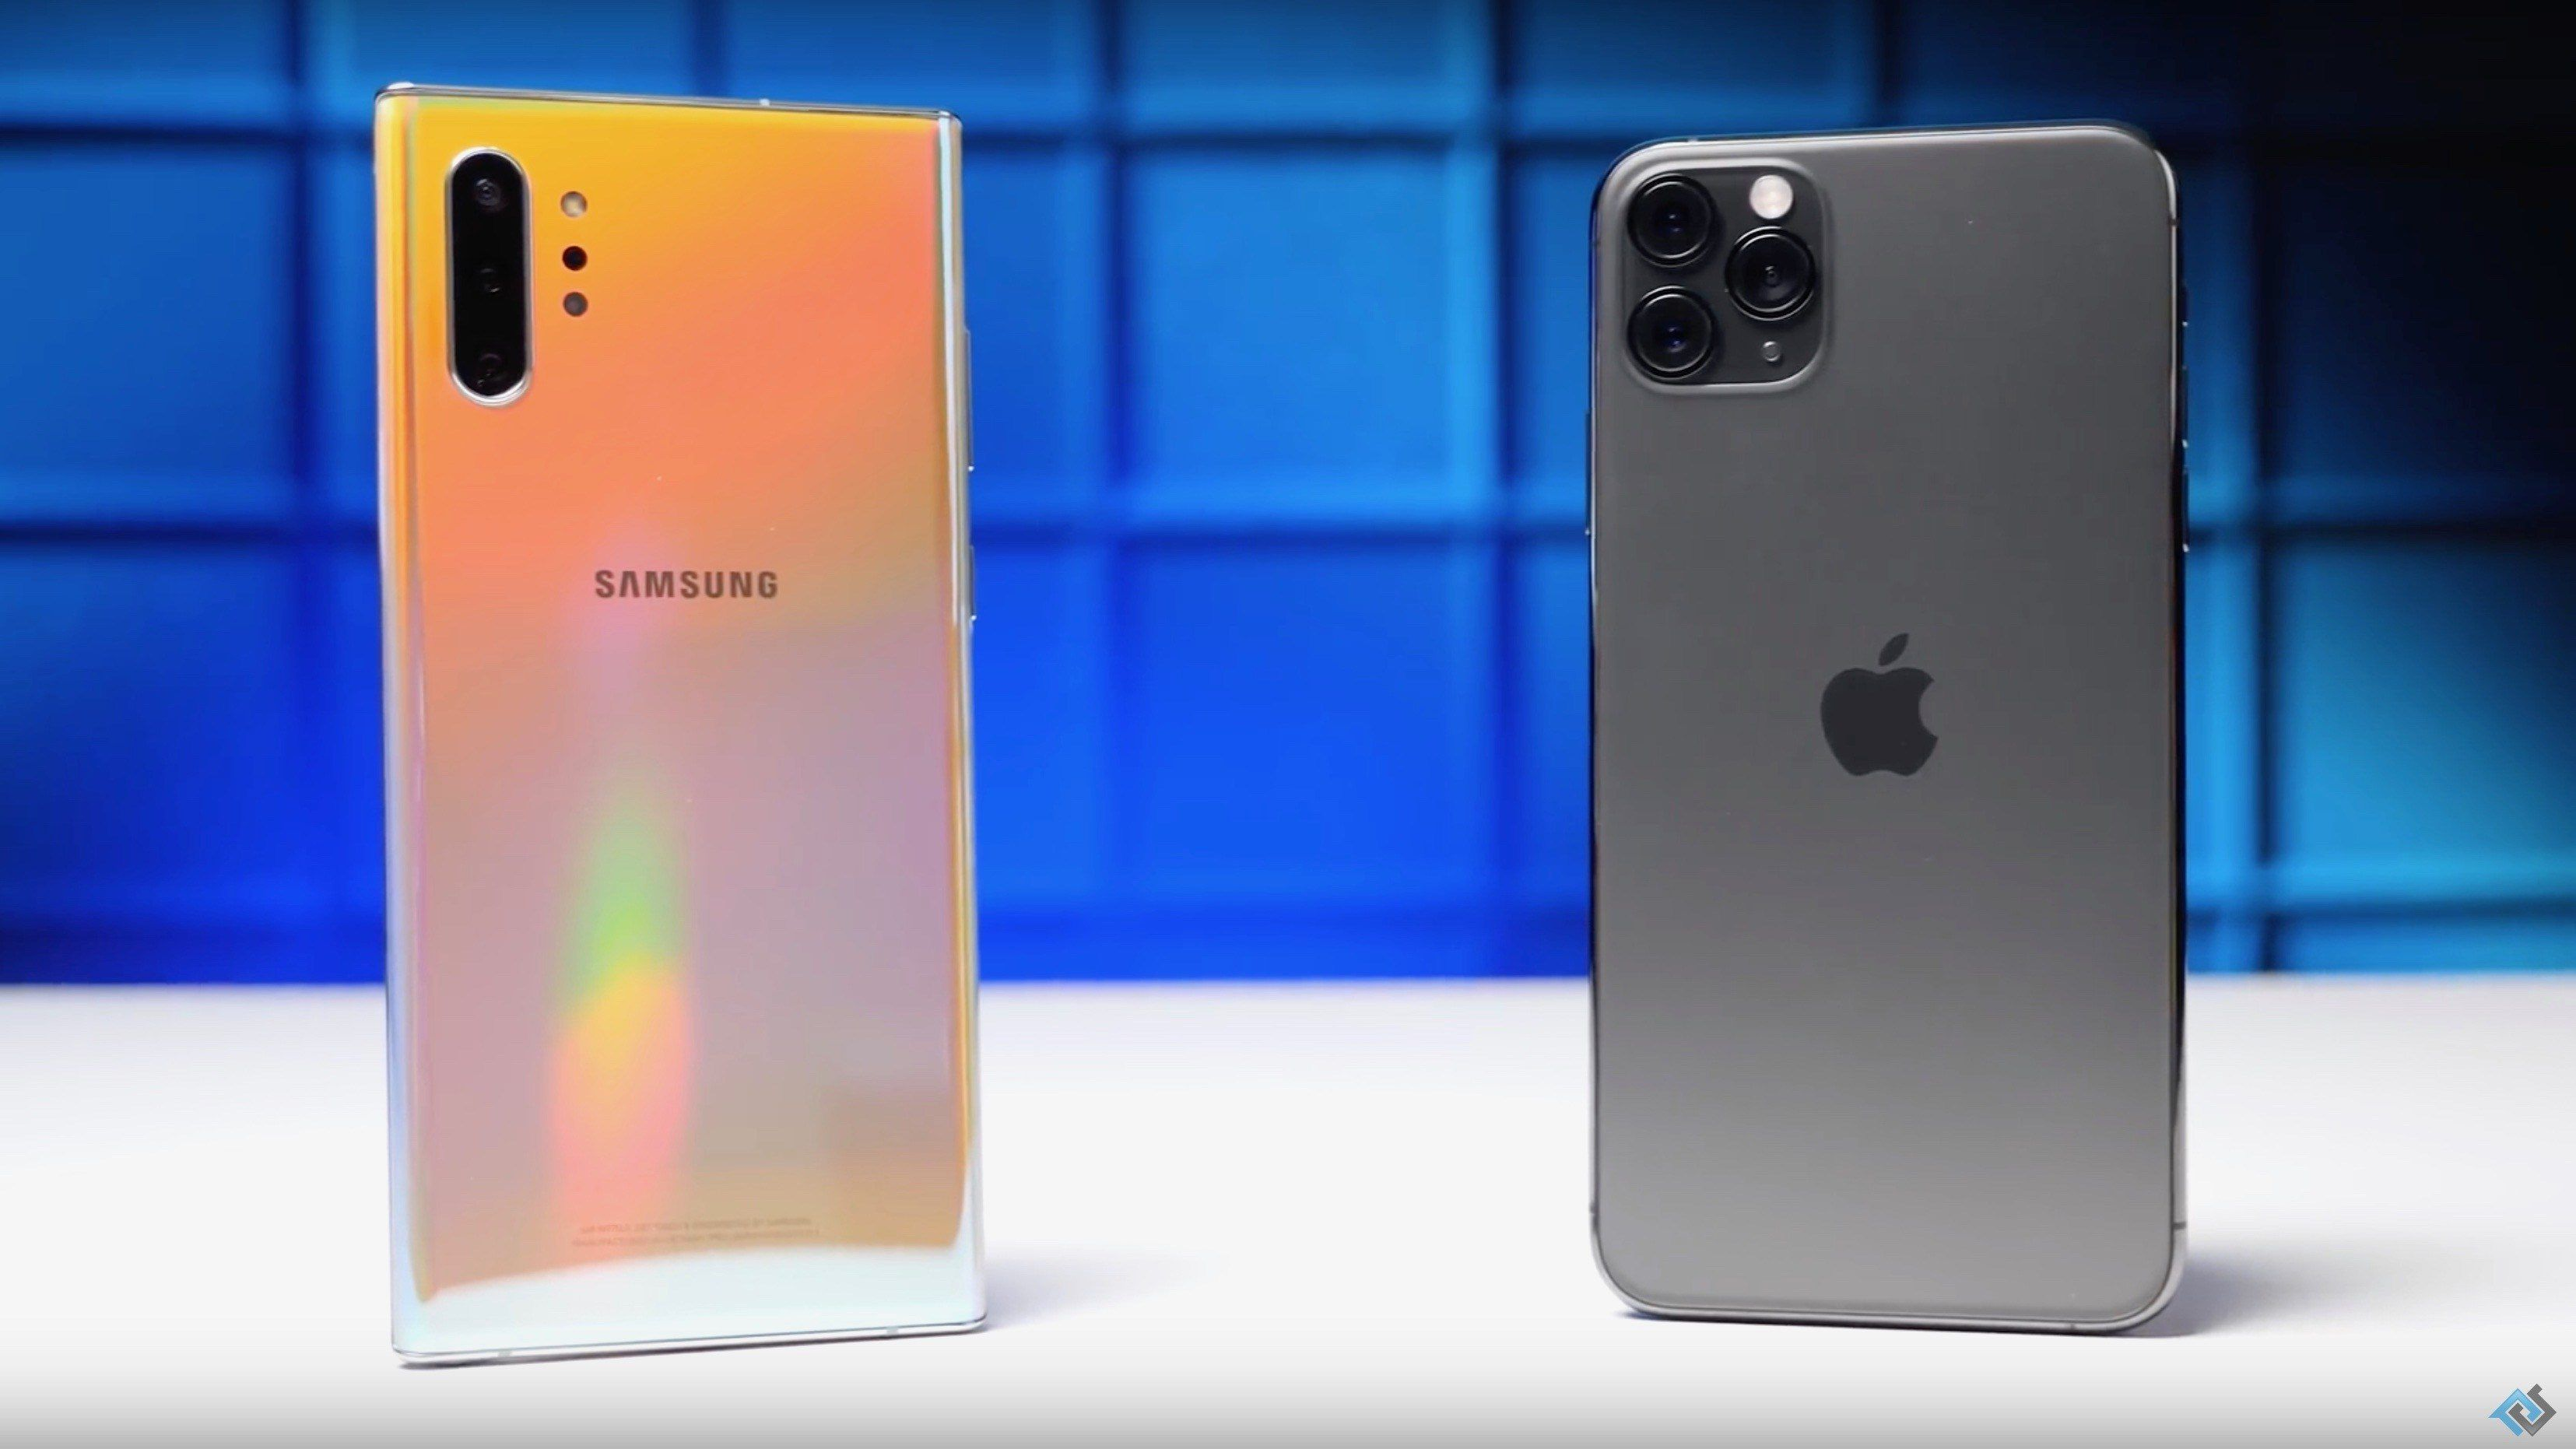 iPhone 11 Pro Max Paced Behind Samsung Galaxy Note 10+ Speed Test